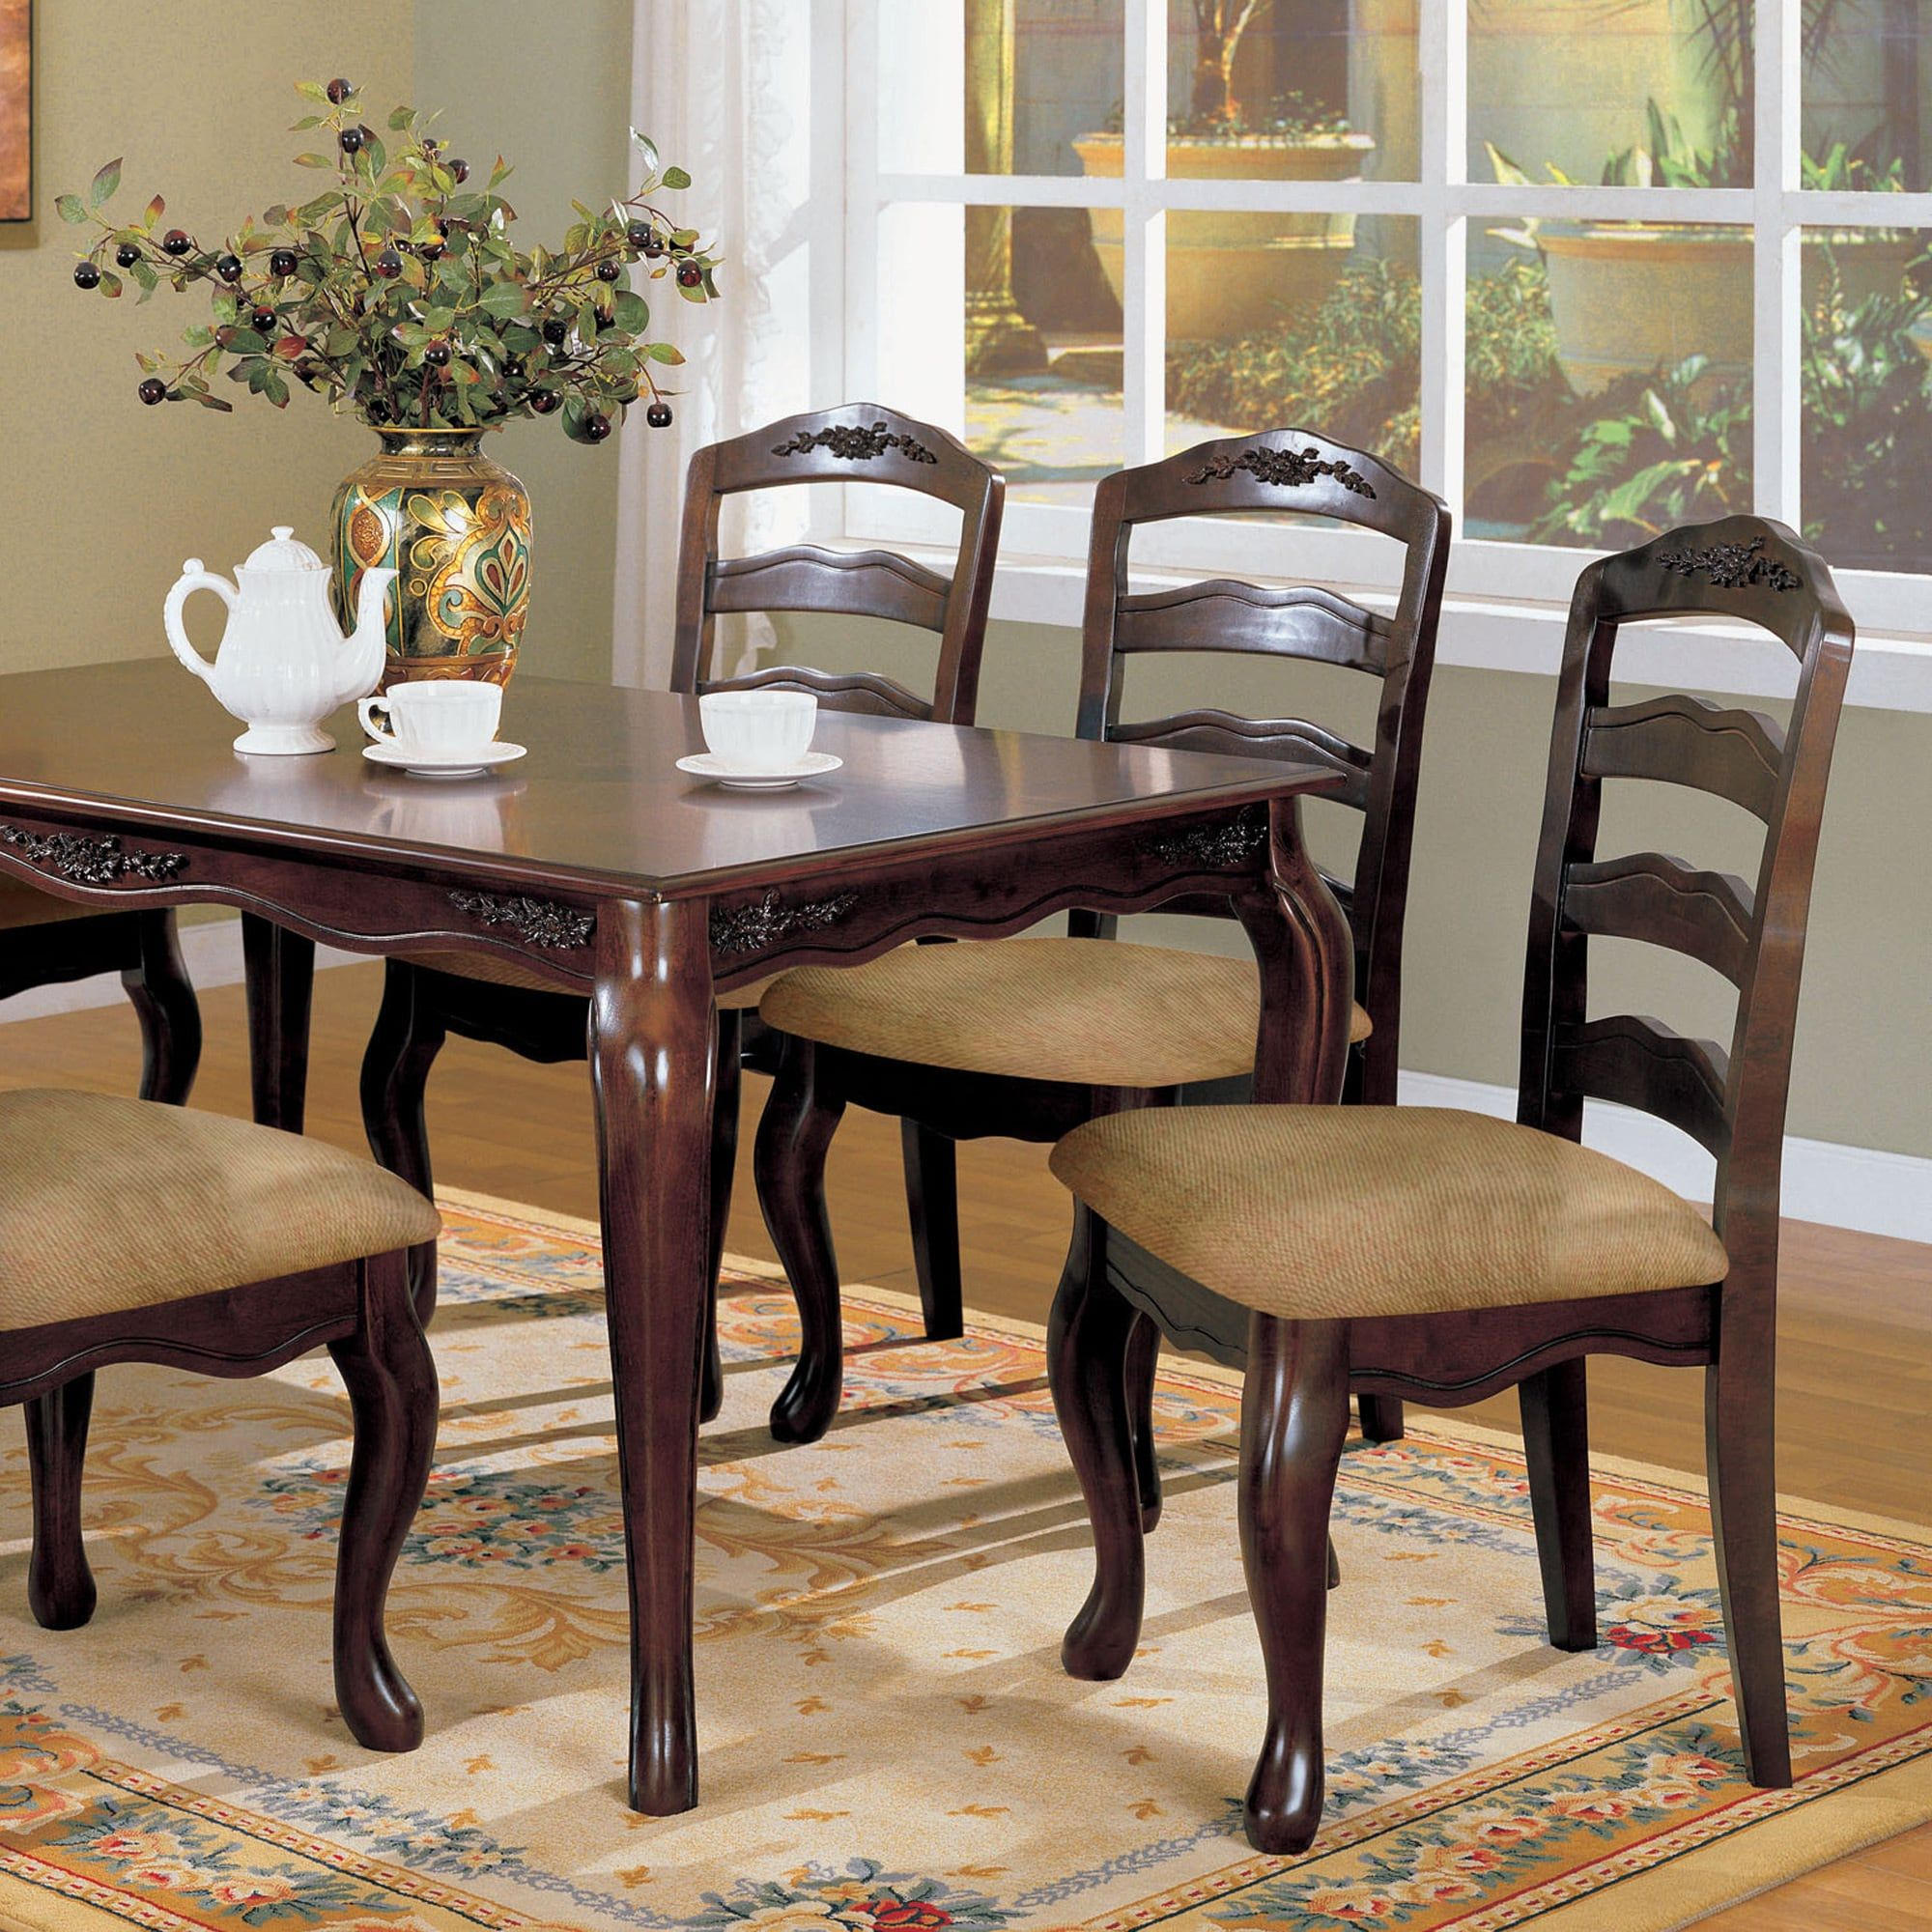 Overstock Com Online Shopping Bedding Furniture Electronics Jewelry Clothing More In 2020 Walnut Dining Chairs Dining Chairs Furniture